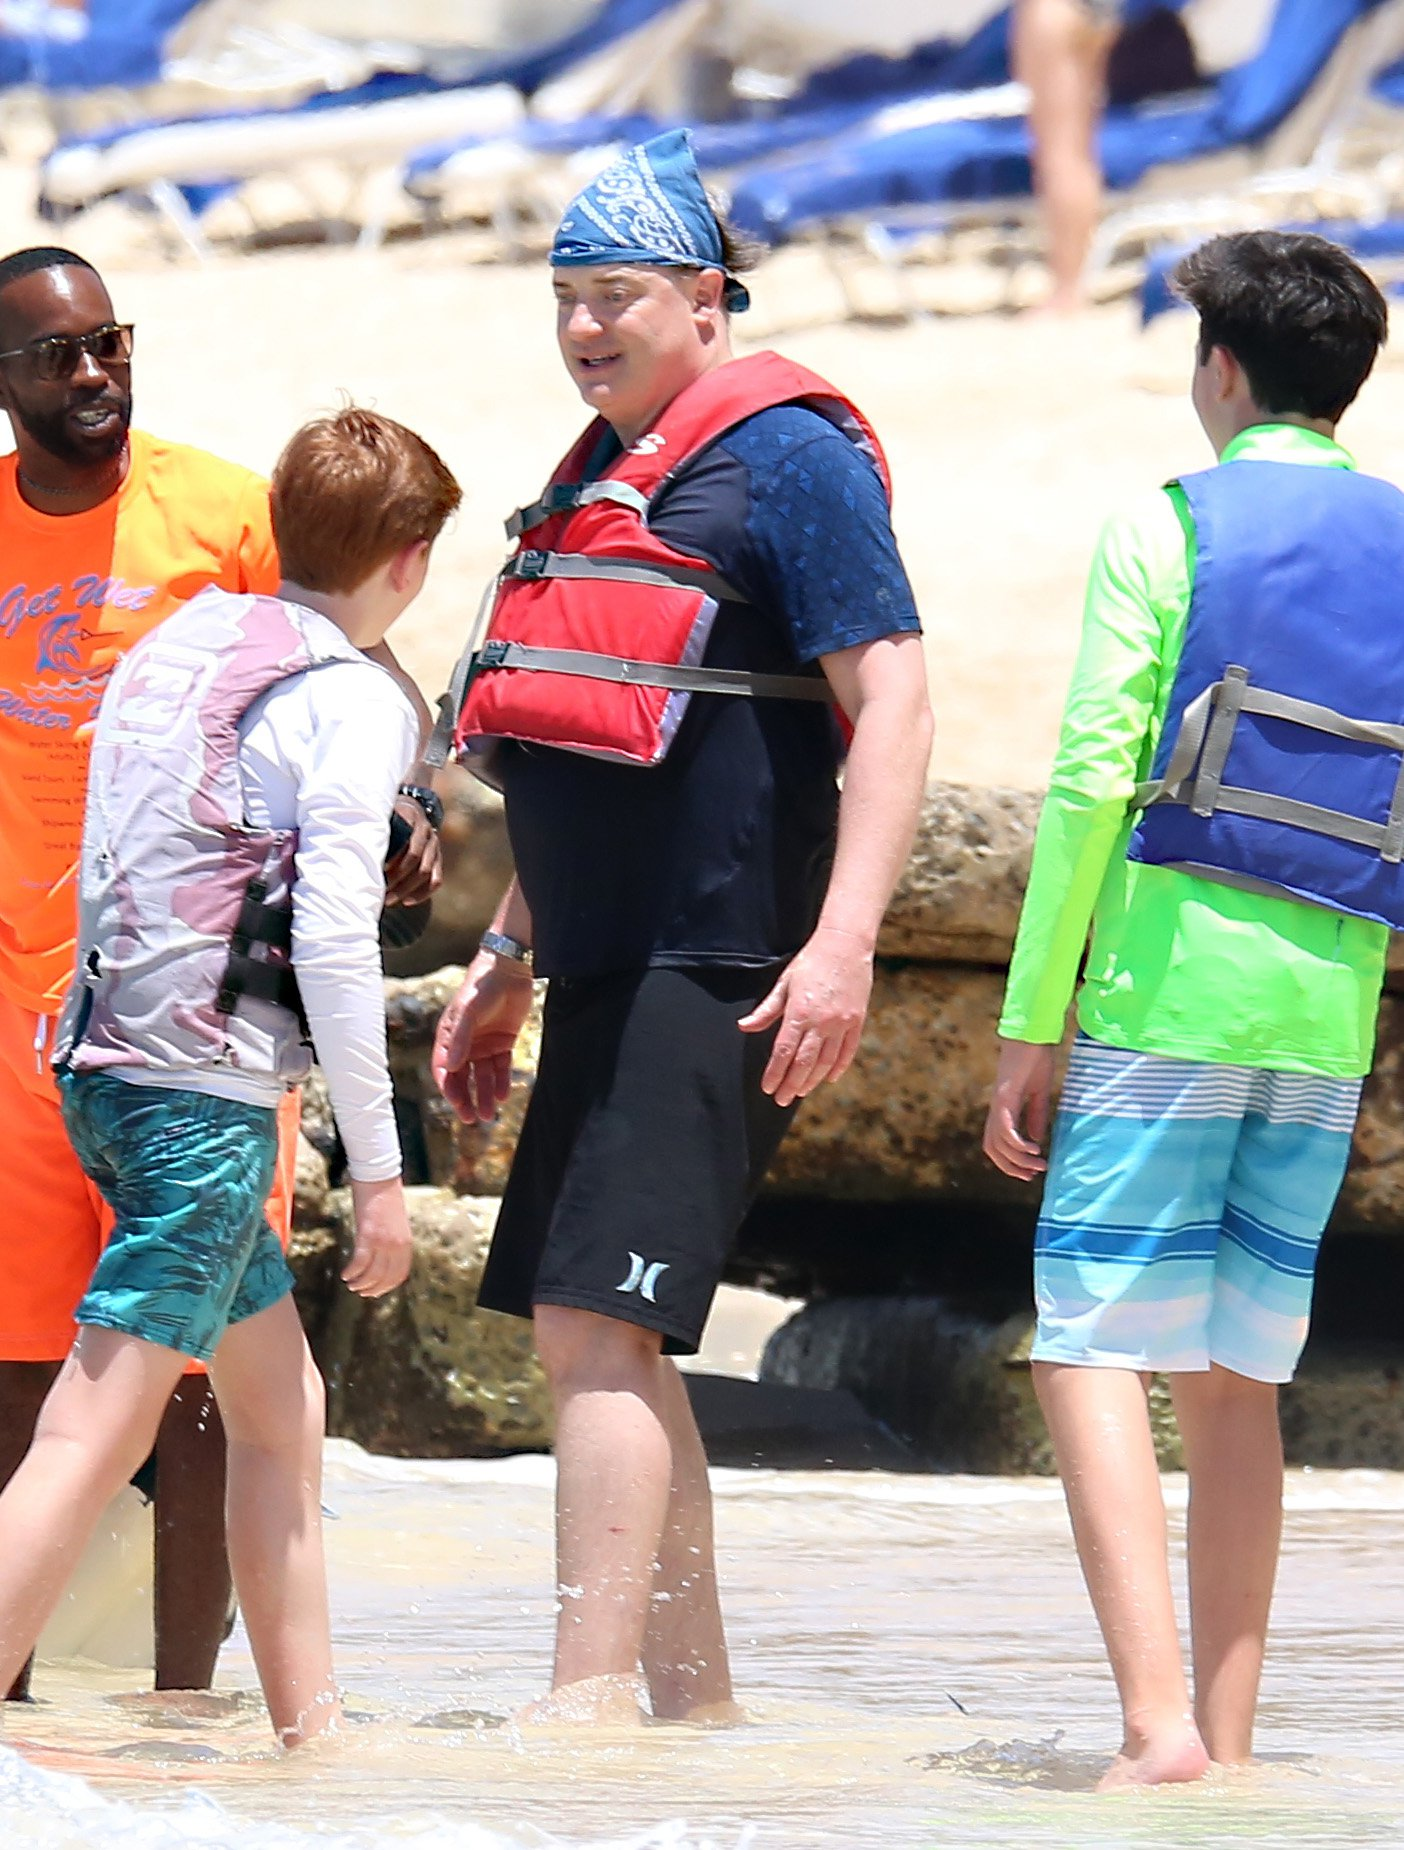 Brendan Fraser covers up from head to toe as he enjoys an inflatable ride with sons at the beach in Barbados. 23 Mar 2018 Pictured: Brendan Fraser. Photo credit: MEGA TheMegaAgency.com +1 888 505 6342